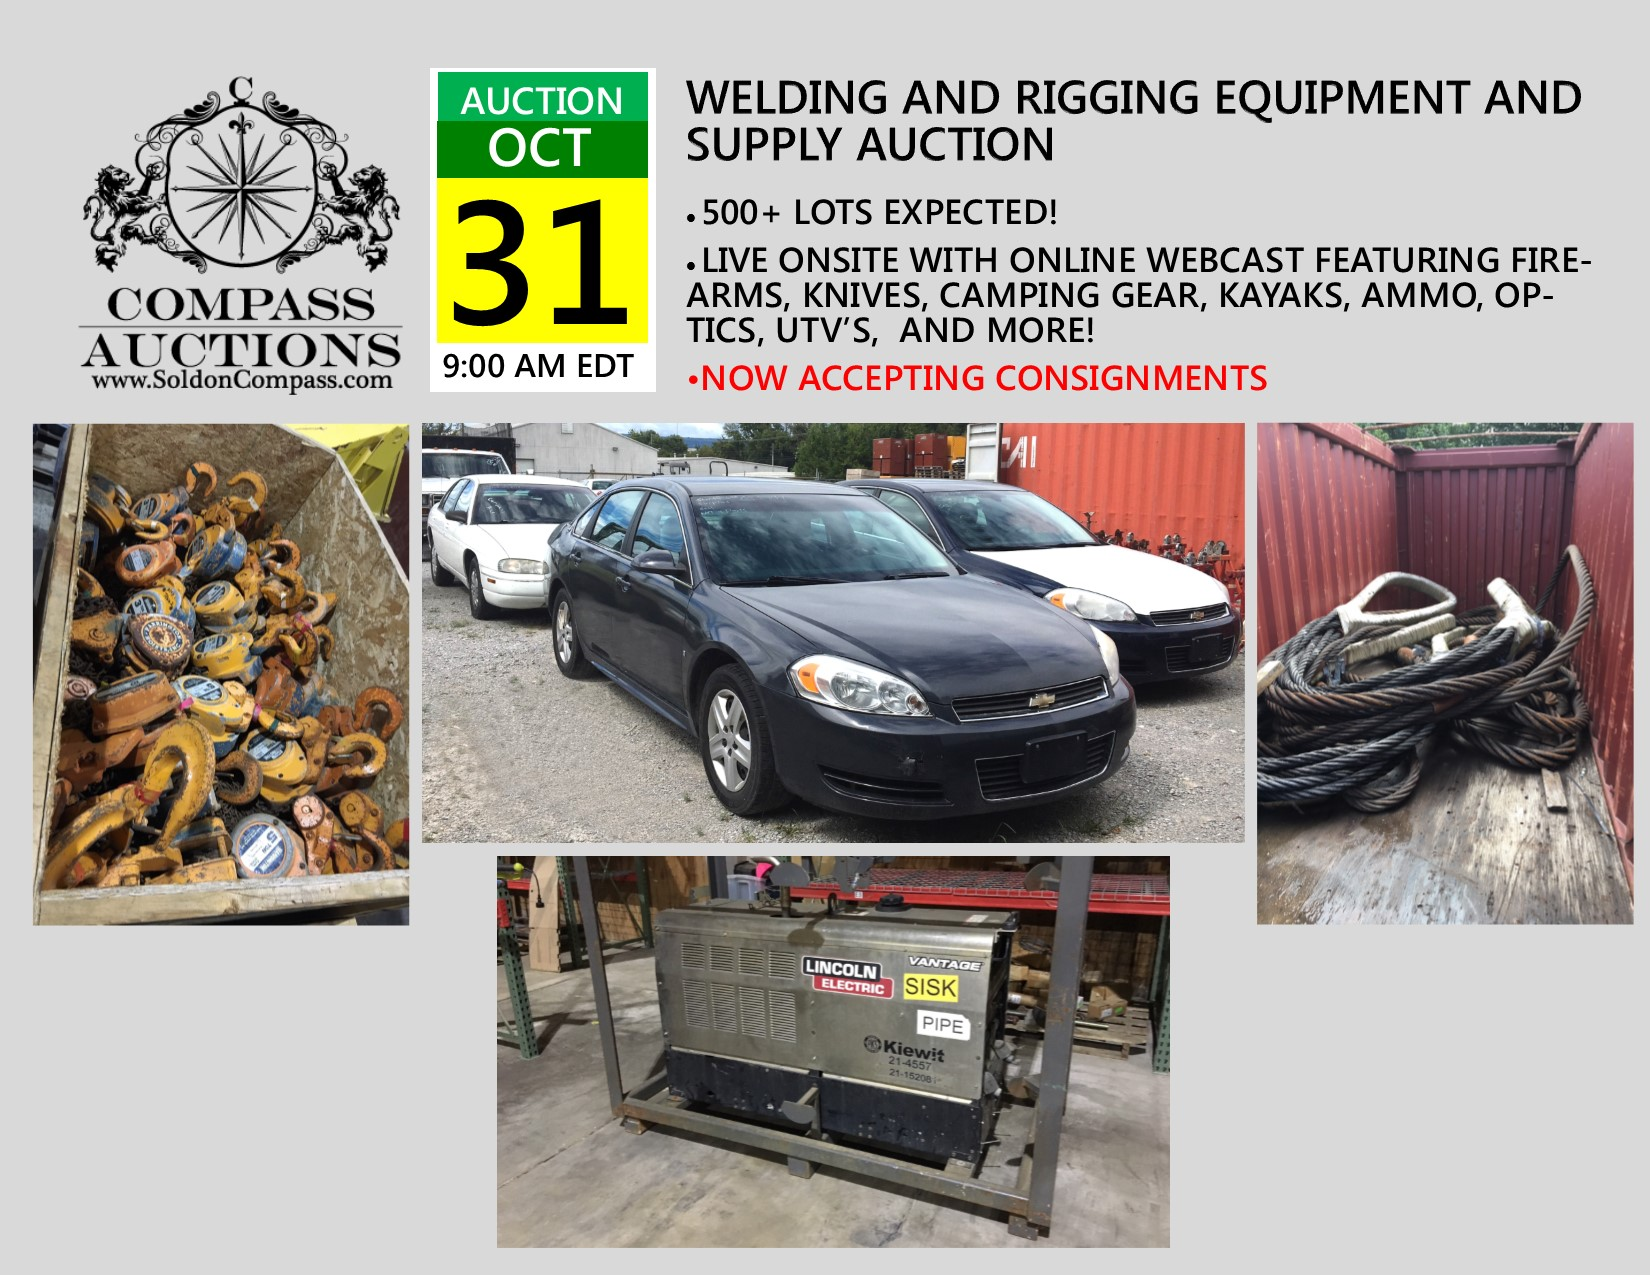 National Contractor Welding, Rigging, Vehicles and Equipment COMPASS AUCTIONS